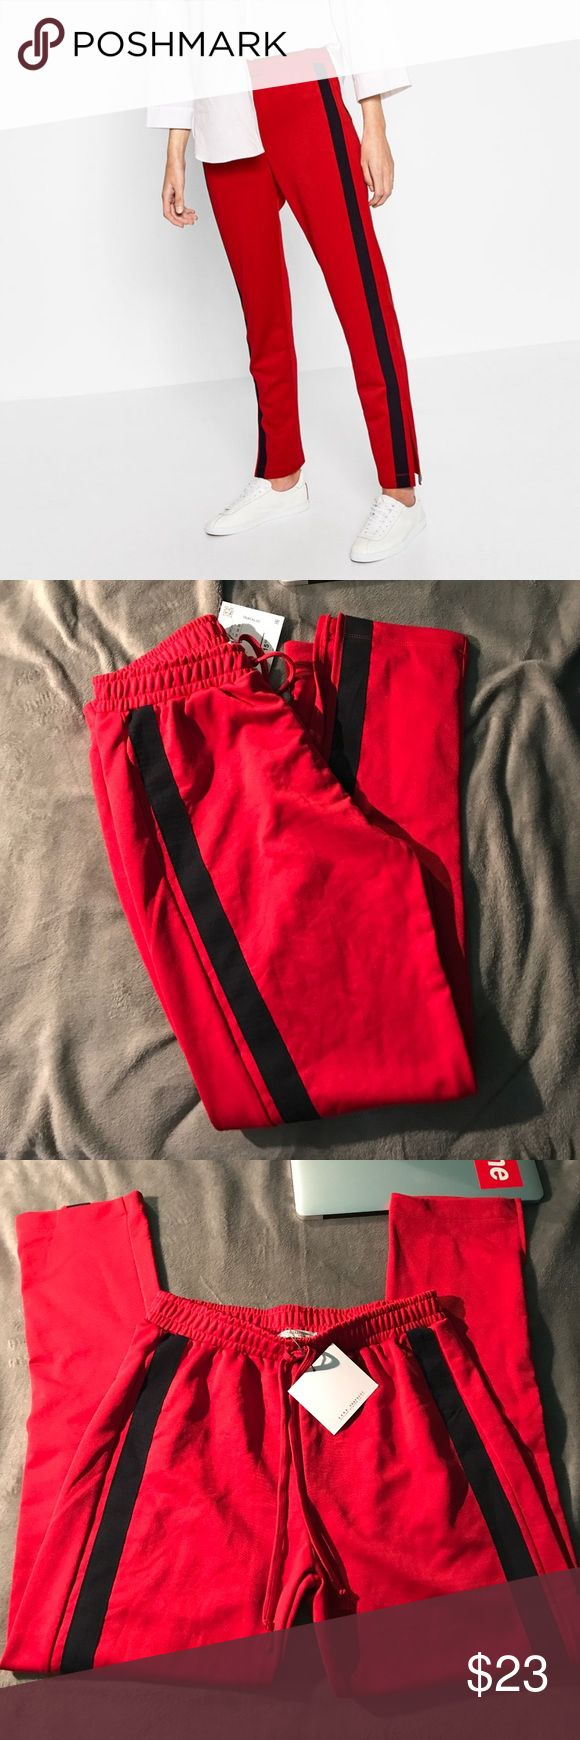 Side Stripe Jogger Trousers Zara red jogger trousers with black side stripe side band in a medium ❤️ this item has never been worn and the tag is still attached. Zara Pants Track Pants & Joggers